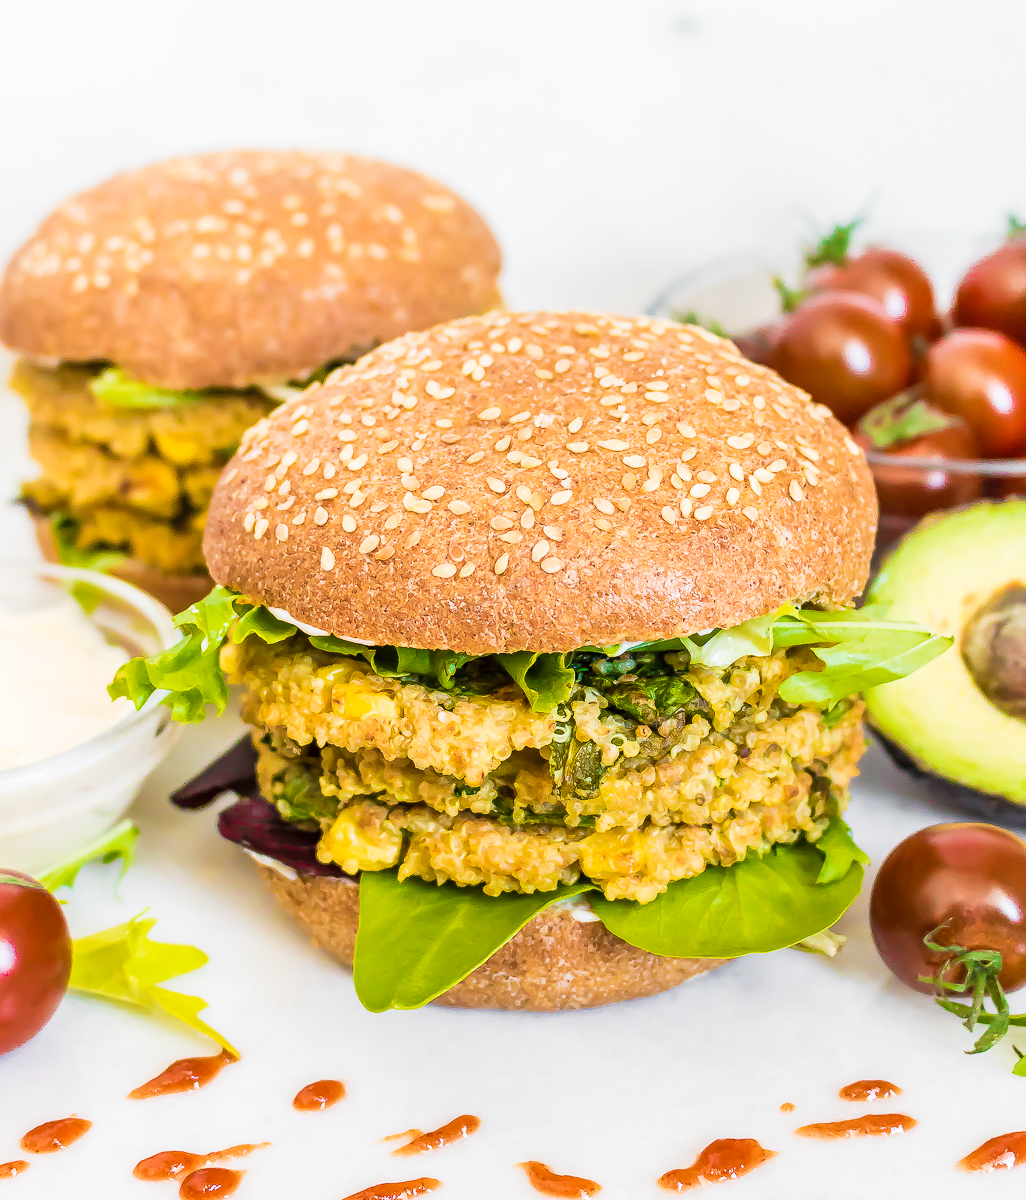 QUINOA CORN FETA BURGERS - My Digital Kitchen